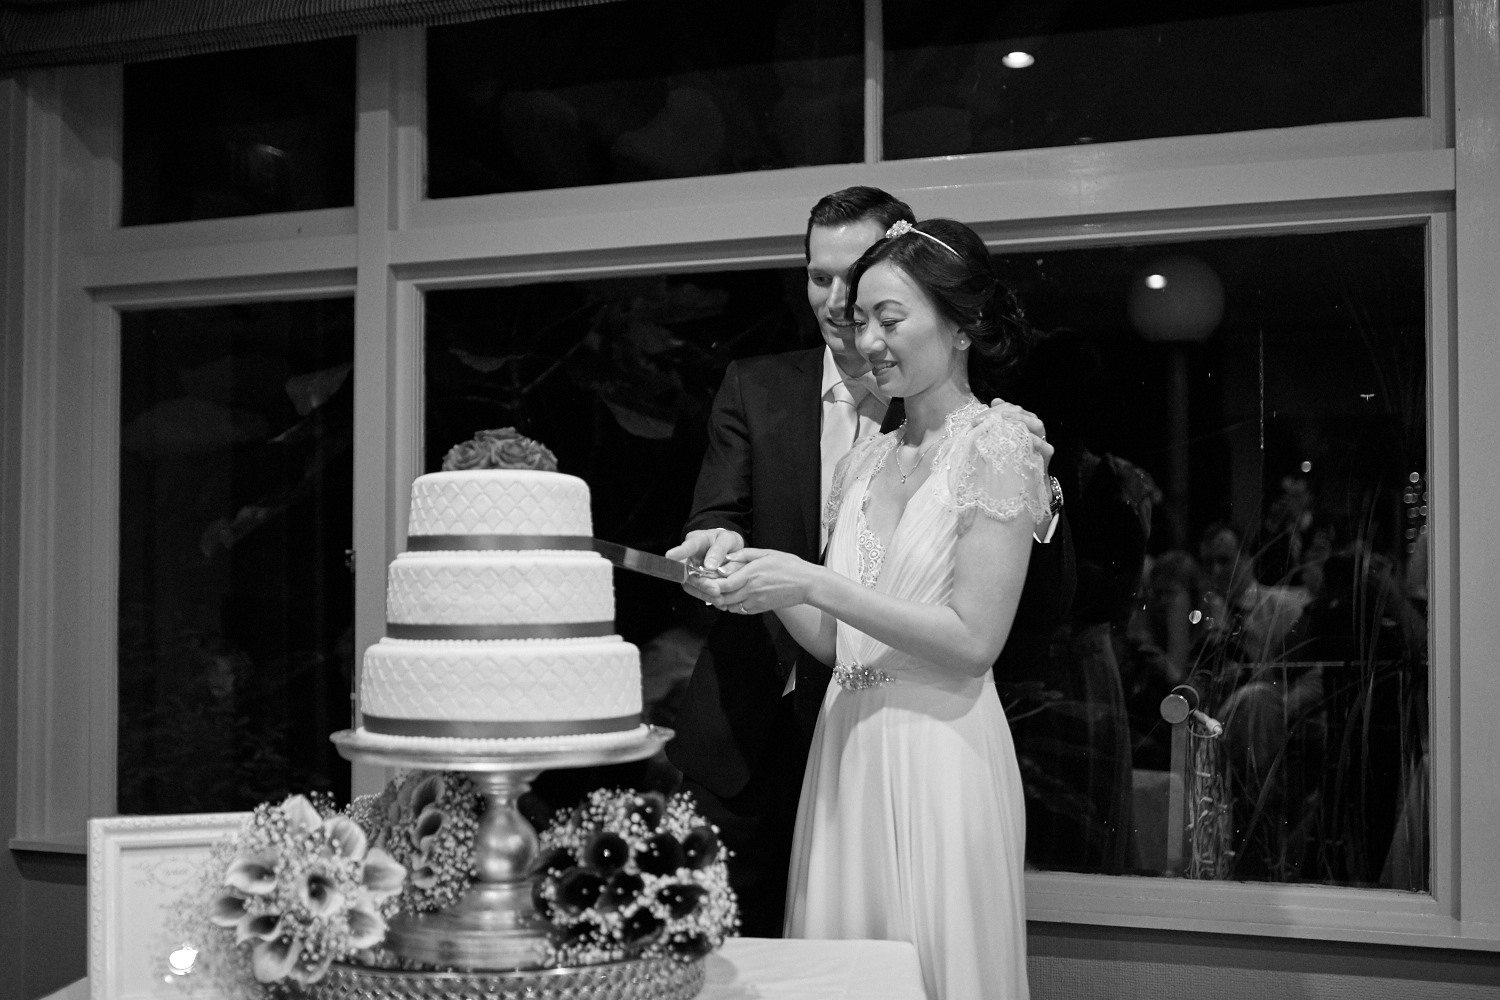 cutting cake at wedding